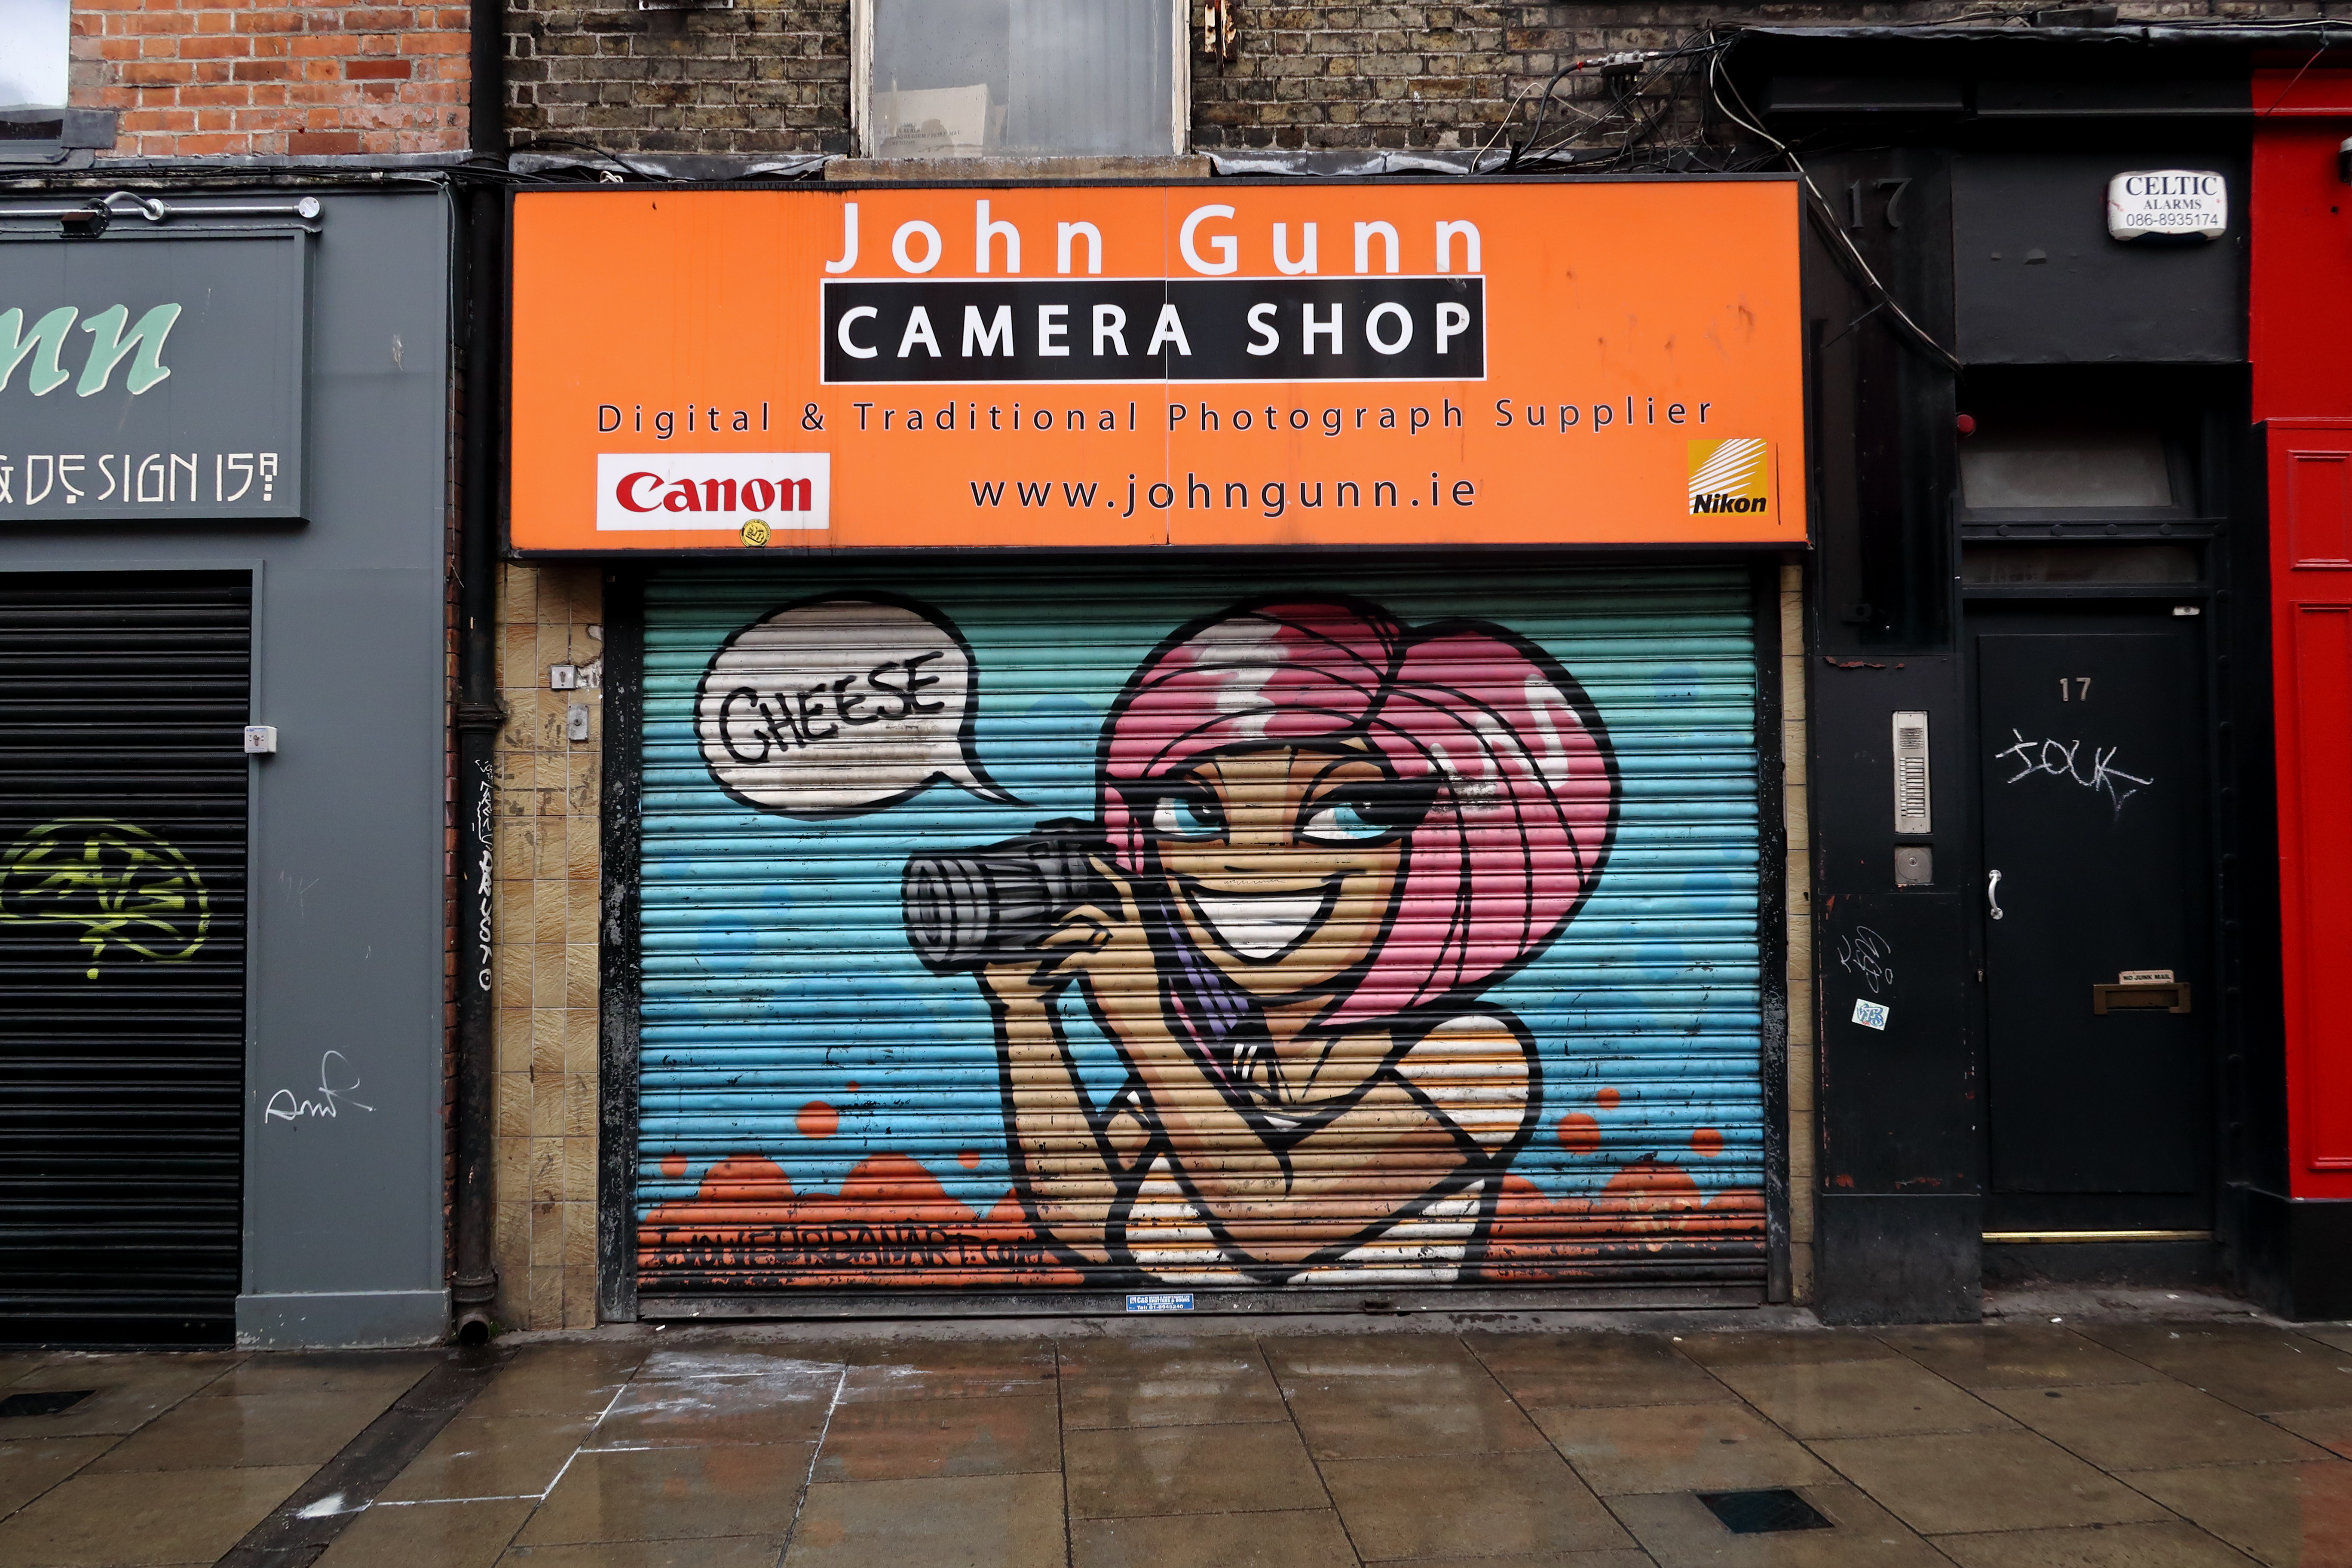 42 Dublin Street Art - Girl on John Gunn